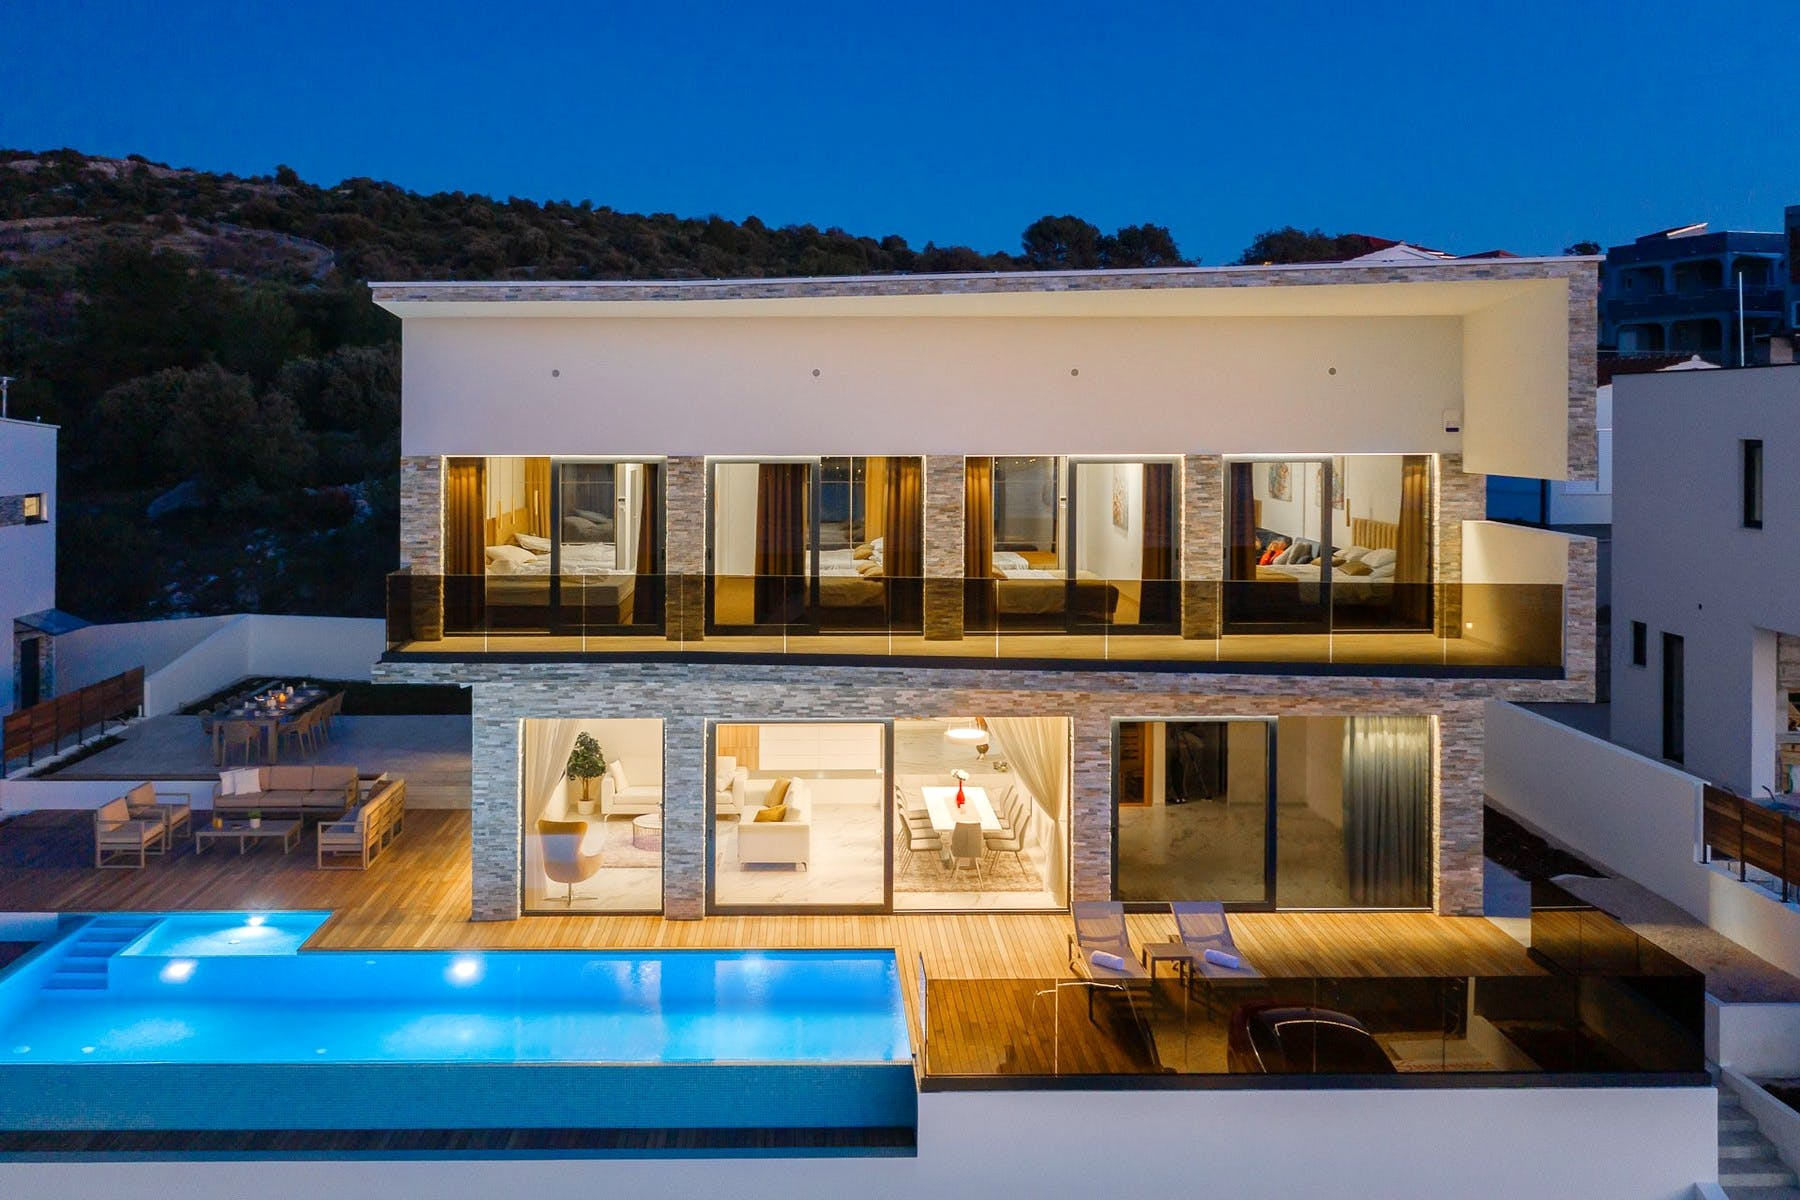 Night ambiance of luxury villa with swimming pool